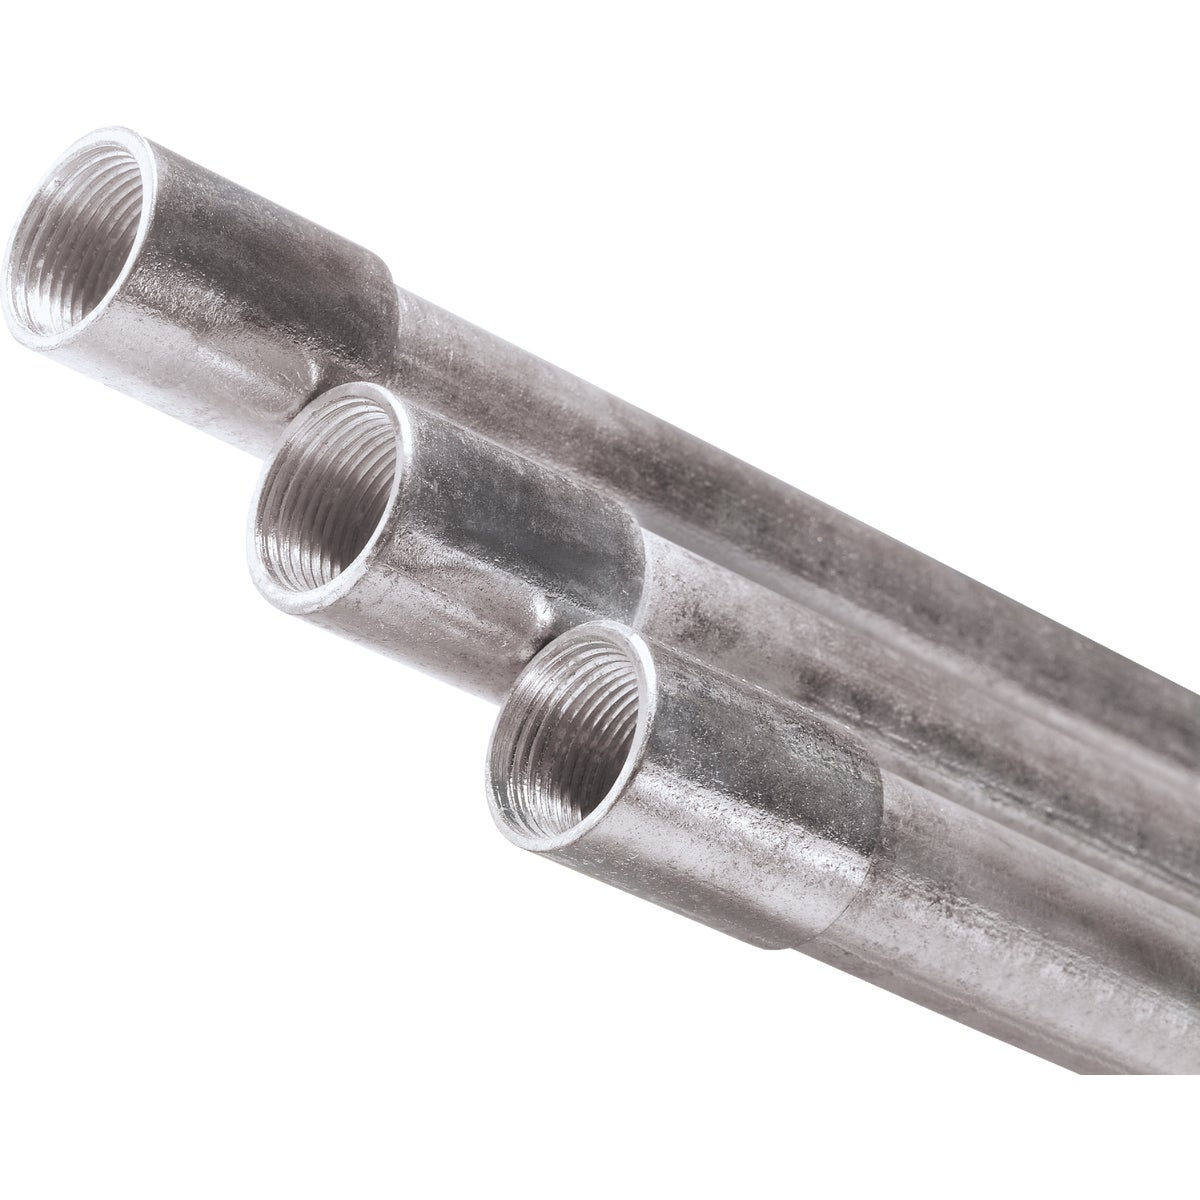 "2"" RIGID CONDUIT - 103101 by Allied Tube  Atkore"